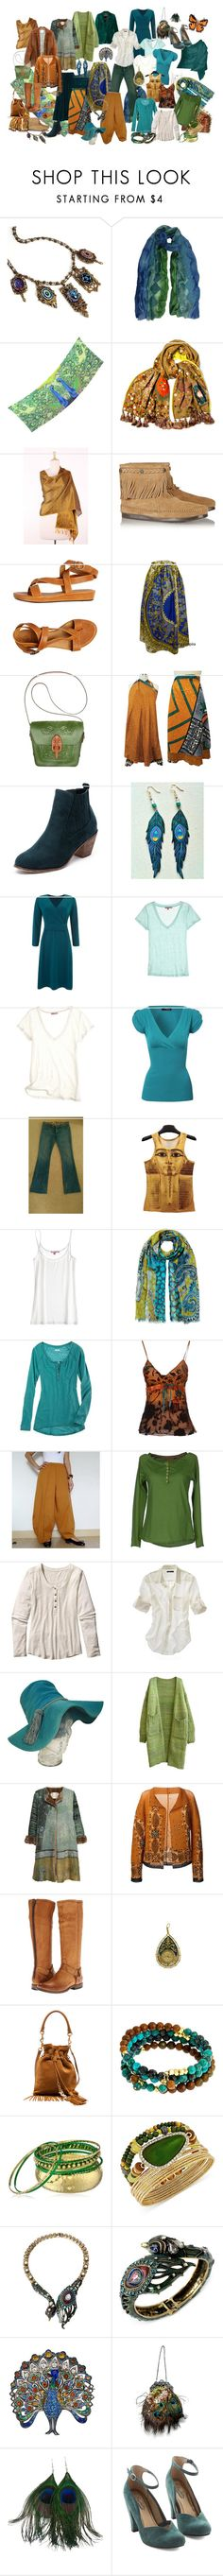 """""""Bohemian Capsule Wardrobe - 5 piece French base"""" by ketutar ❤ liked on Polyvore featuring Sweet Romance, Sujuu, Kenzo, NOVICA, Minnetonka, Coclico, Patricia Nash, Lands' End, Calypso St. Barth and Jane Norman"""